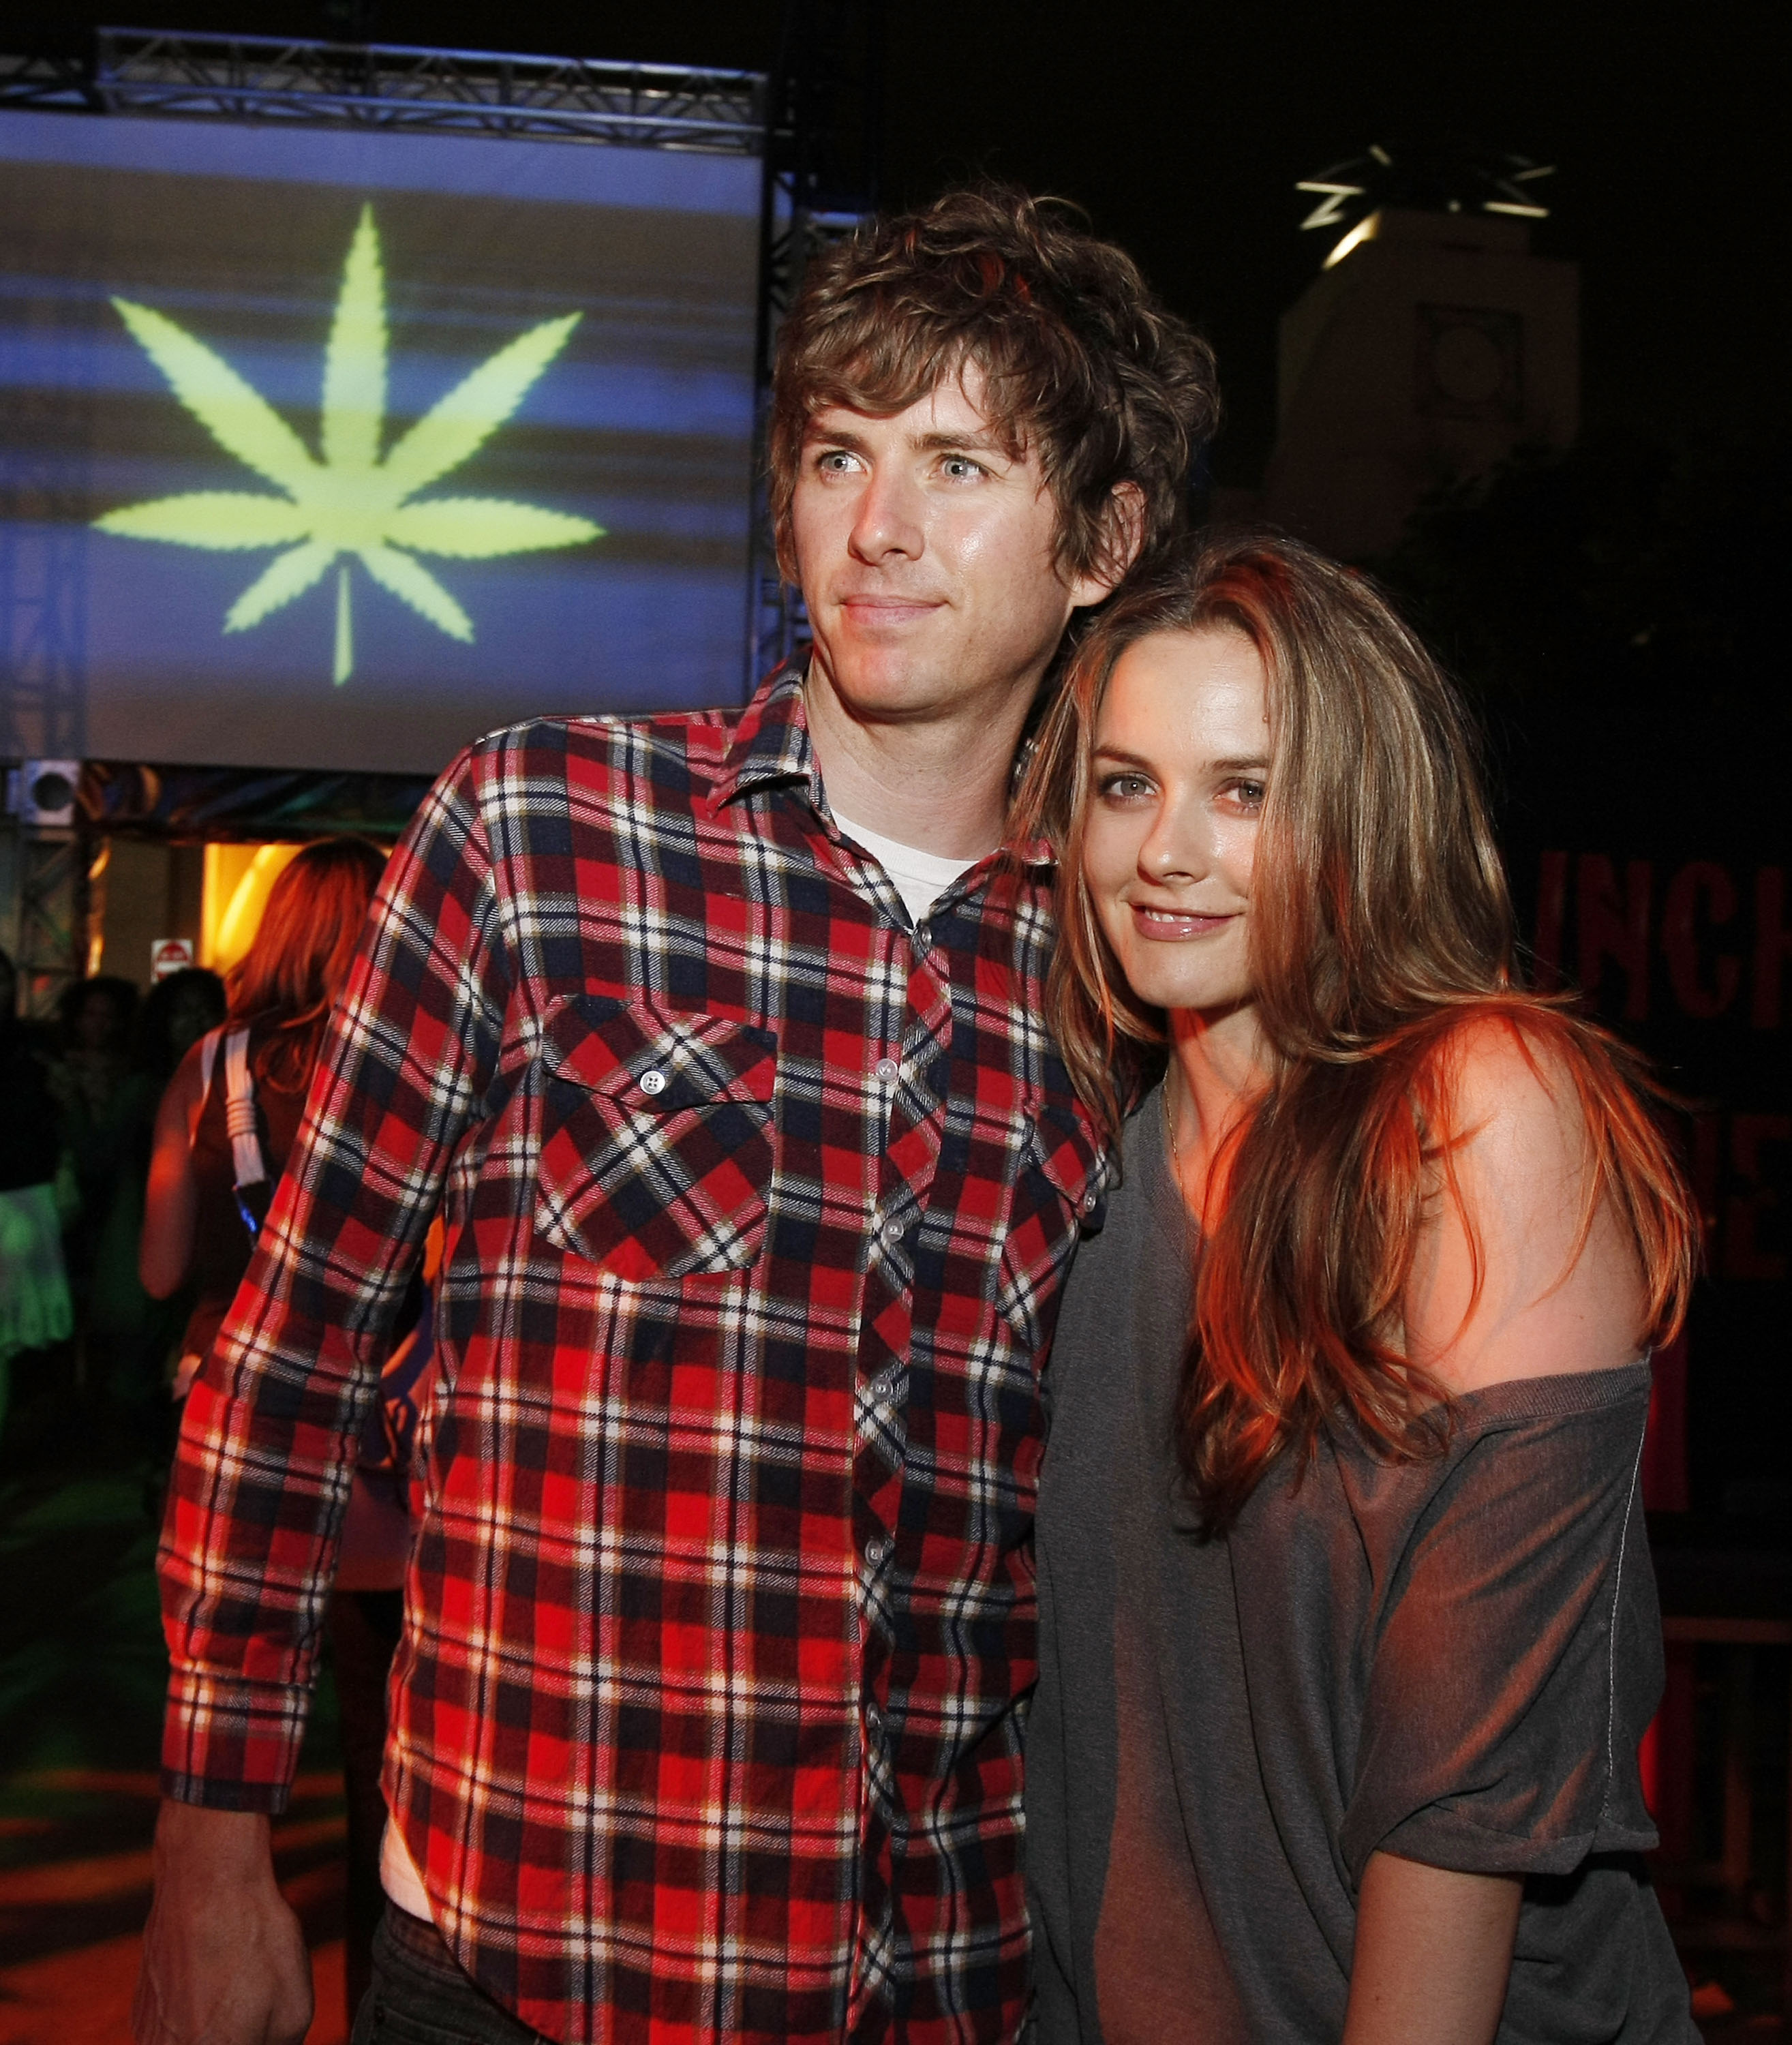 Actress Alicia Silverstone (R) and husband Christopher Jarecki pose at the afterparty for the premiere of Columbia Picture's 'Pineapple Express' at the Mann Village Theater on July 31, 2008, in Los Angeles, California (Getty Images)